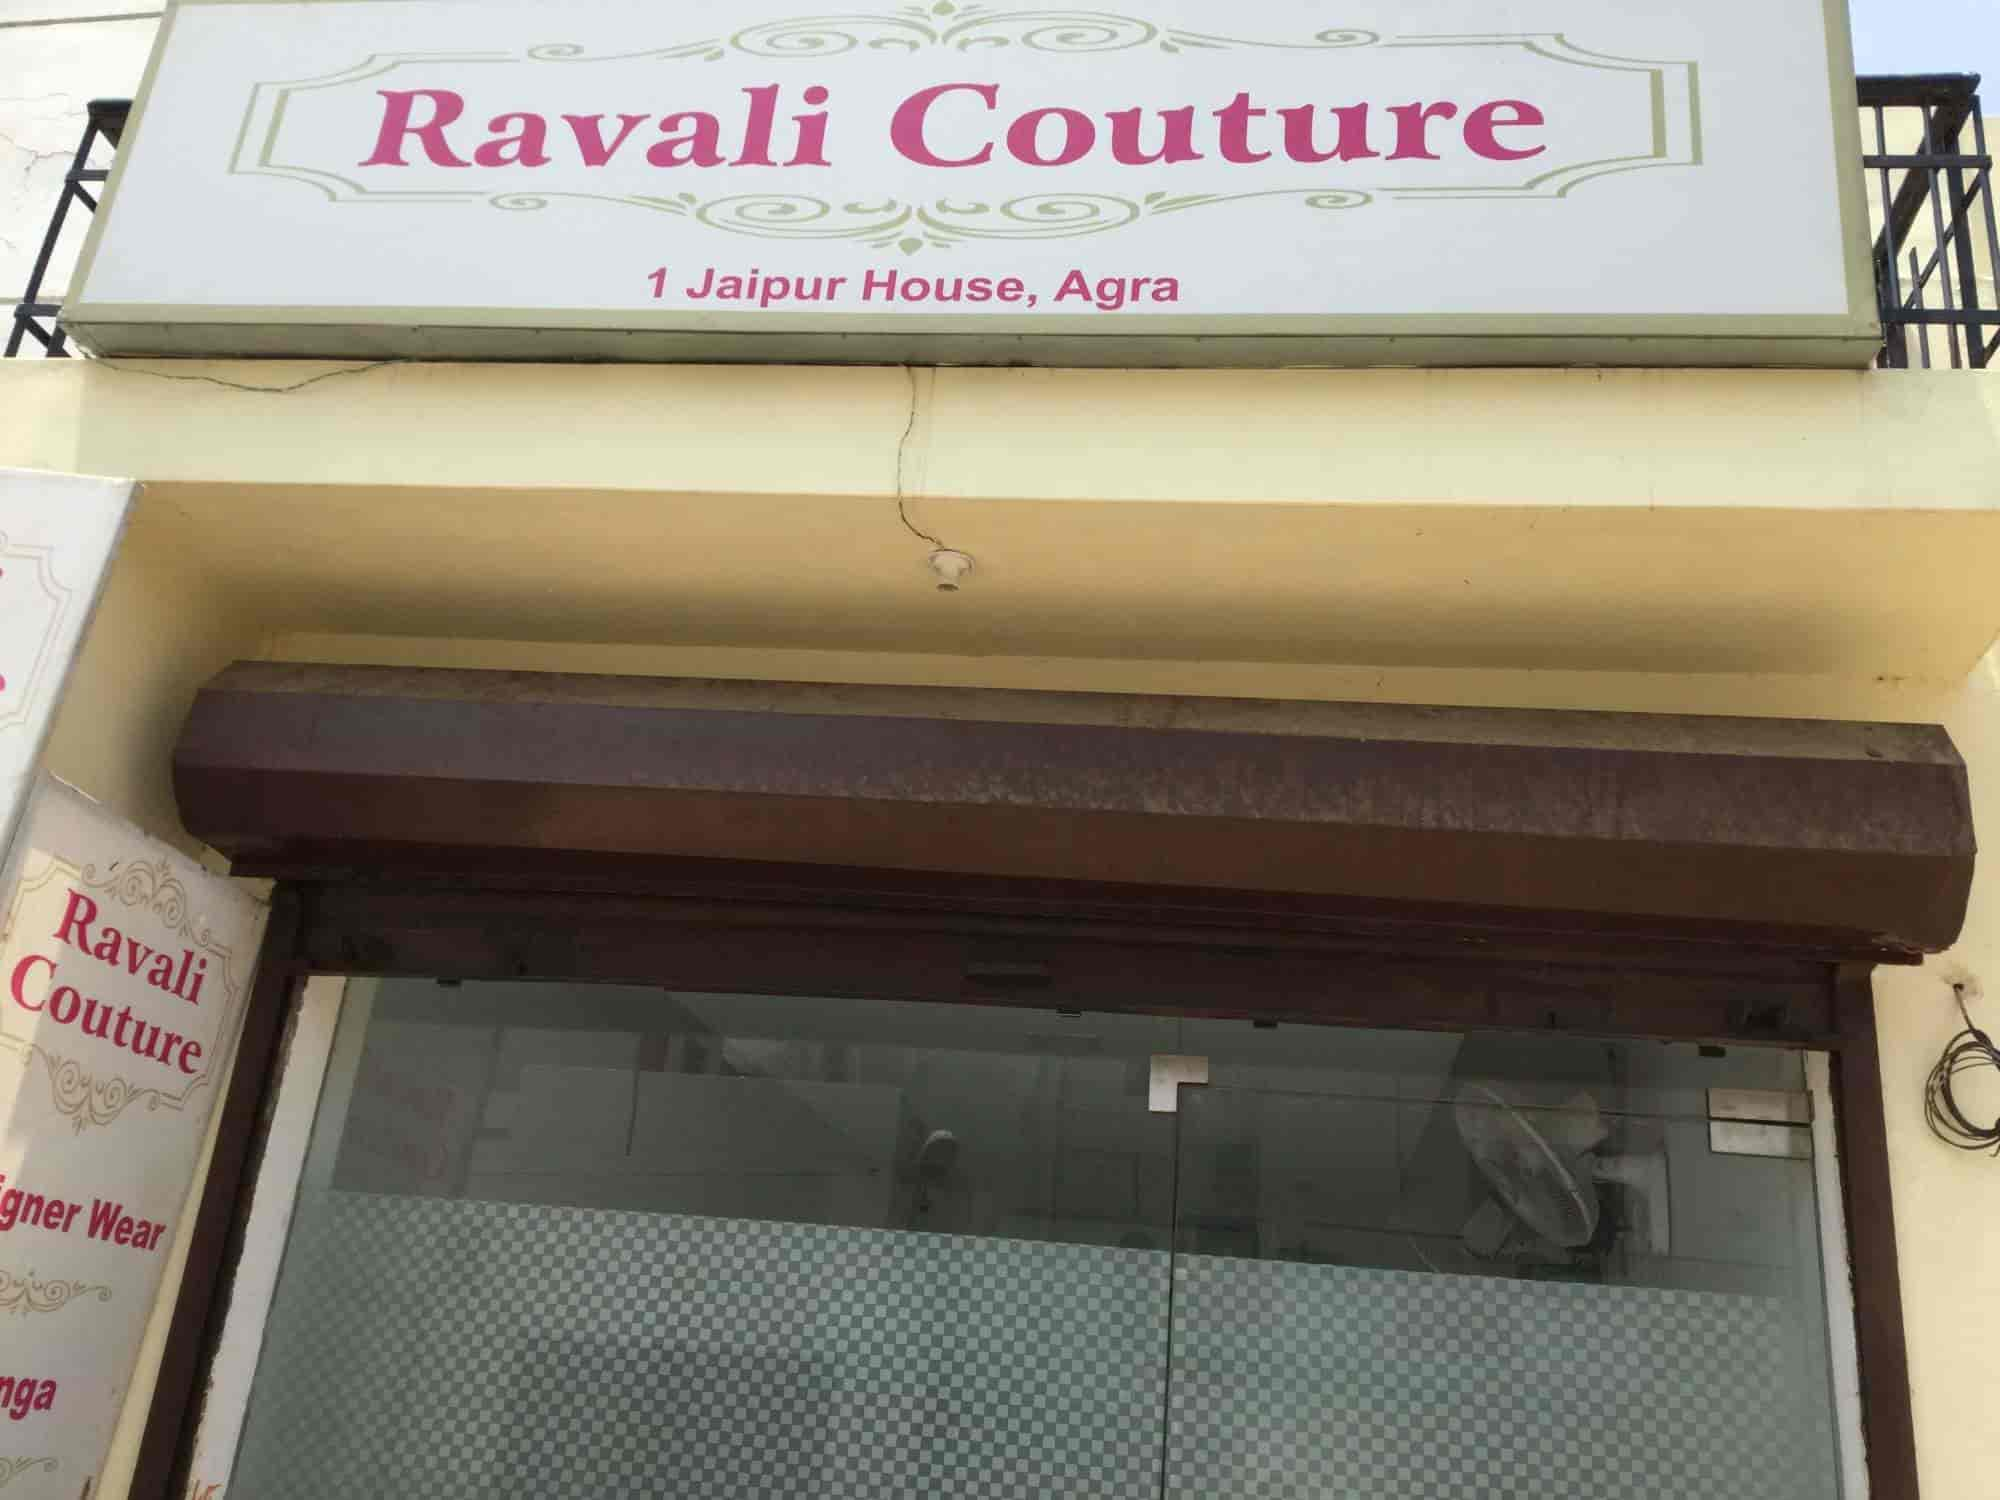 Ravali Couture, Jaipur House Market - Tailors For Ladies in